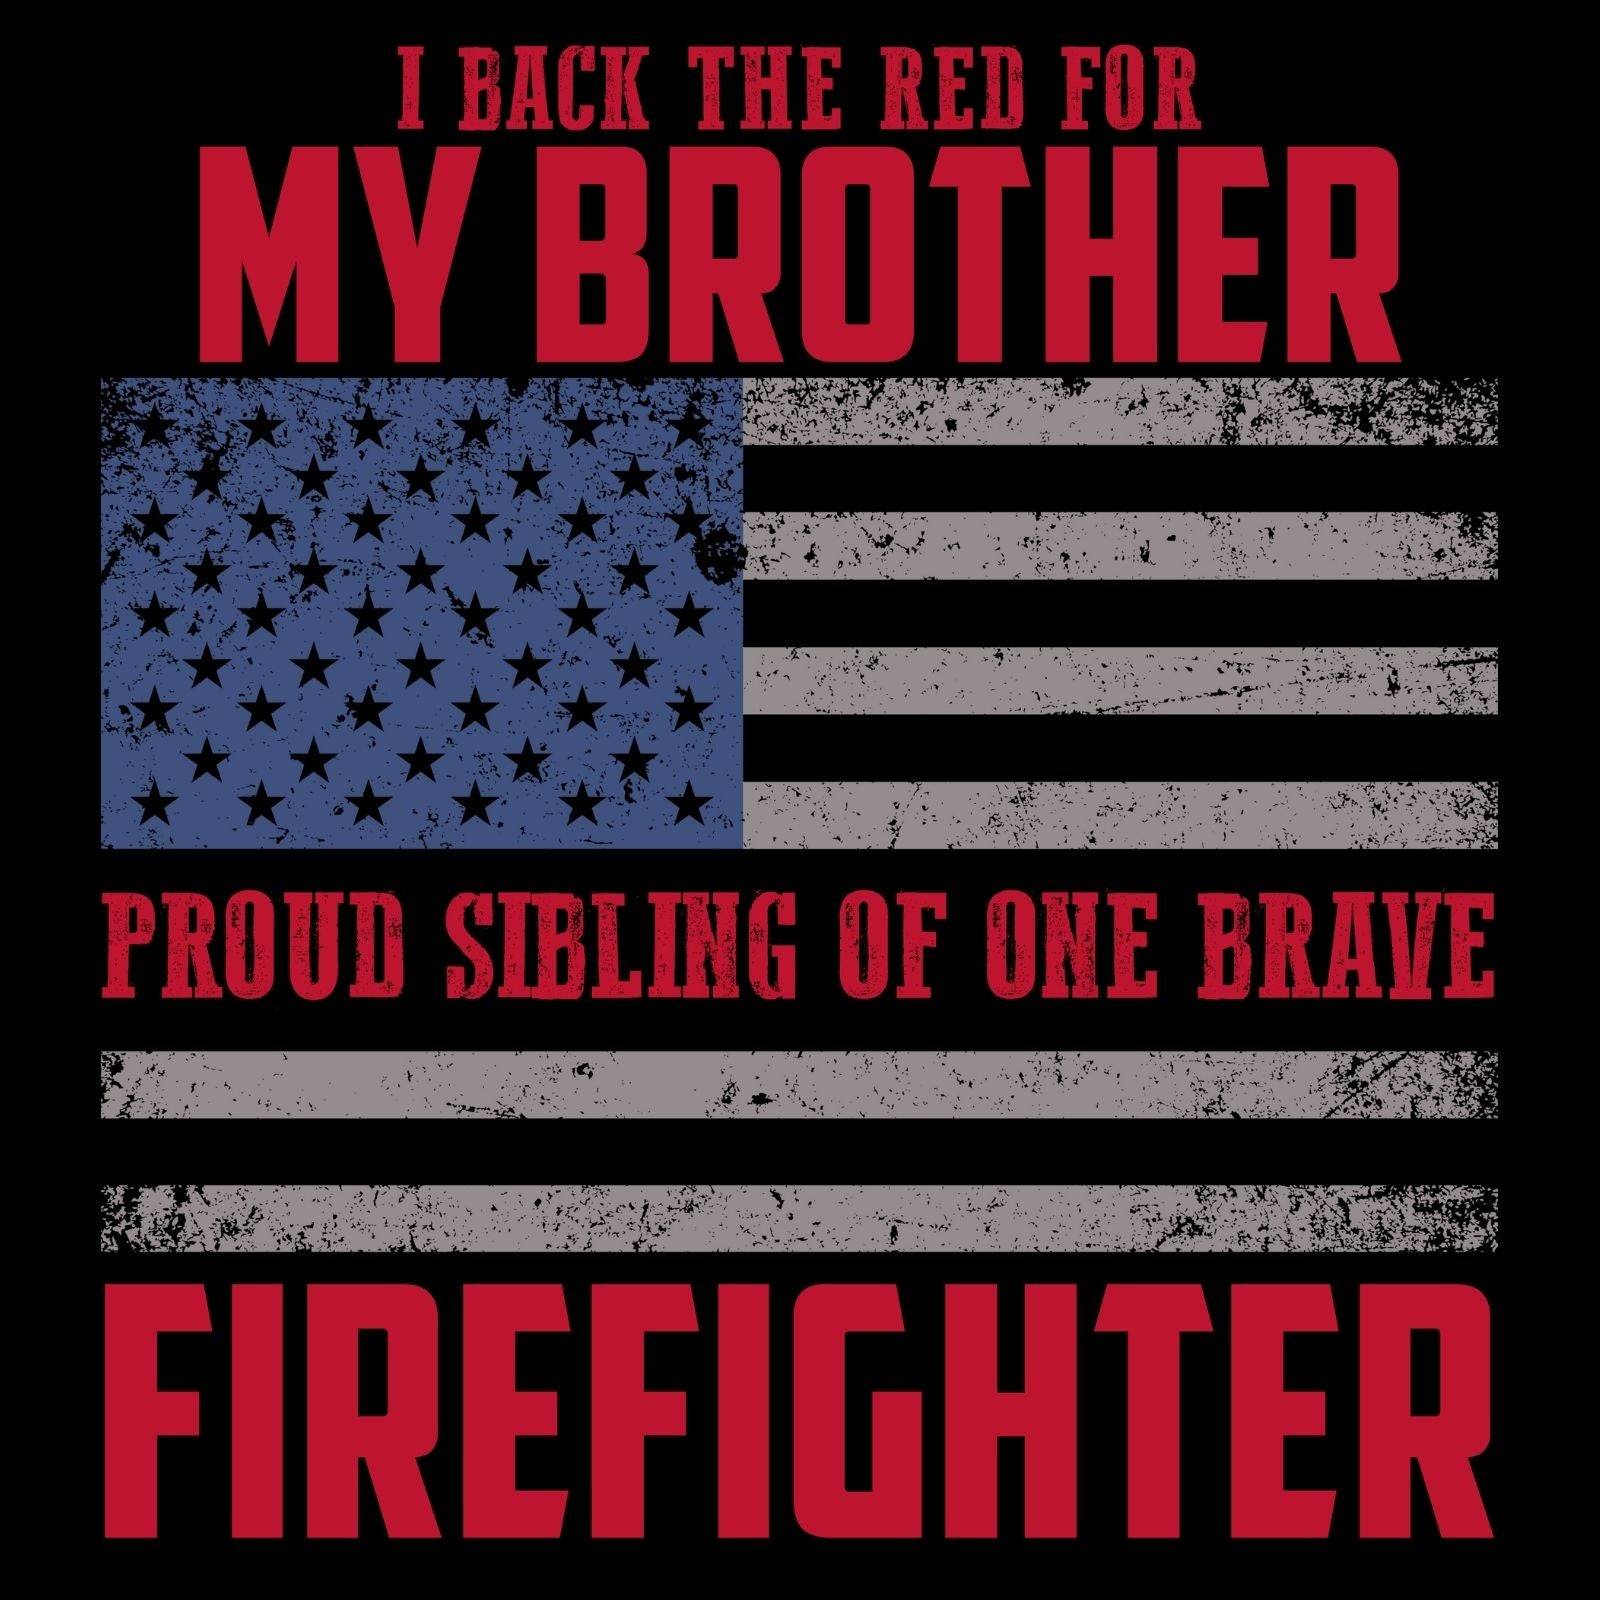 I Back The Red For My Brother, Proud Sibling Of One Brave Firefighter - Bastard Graphics